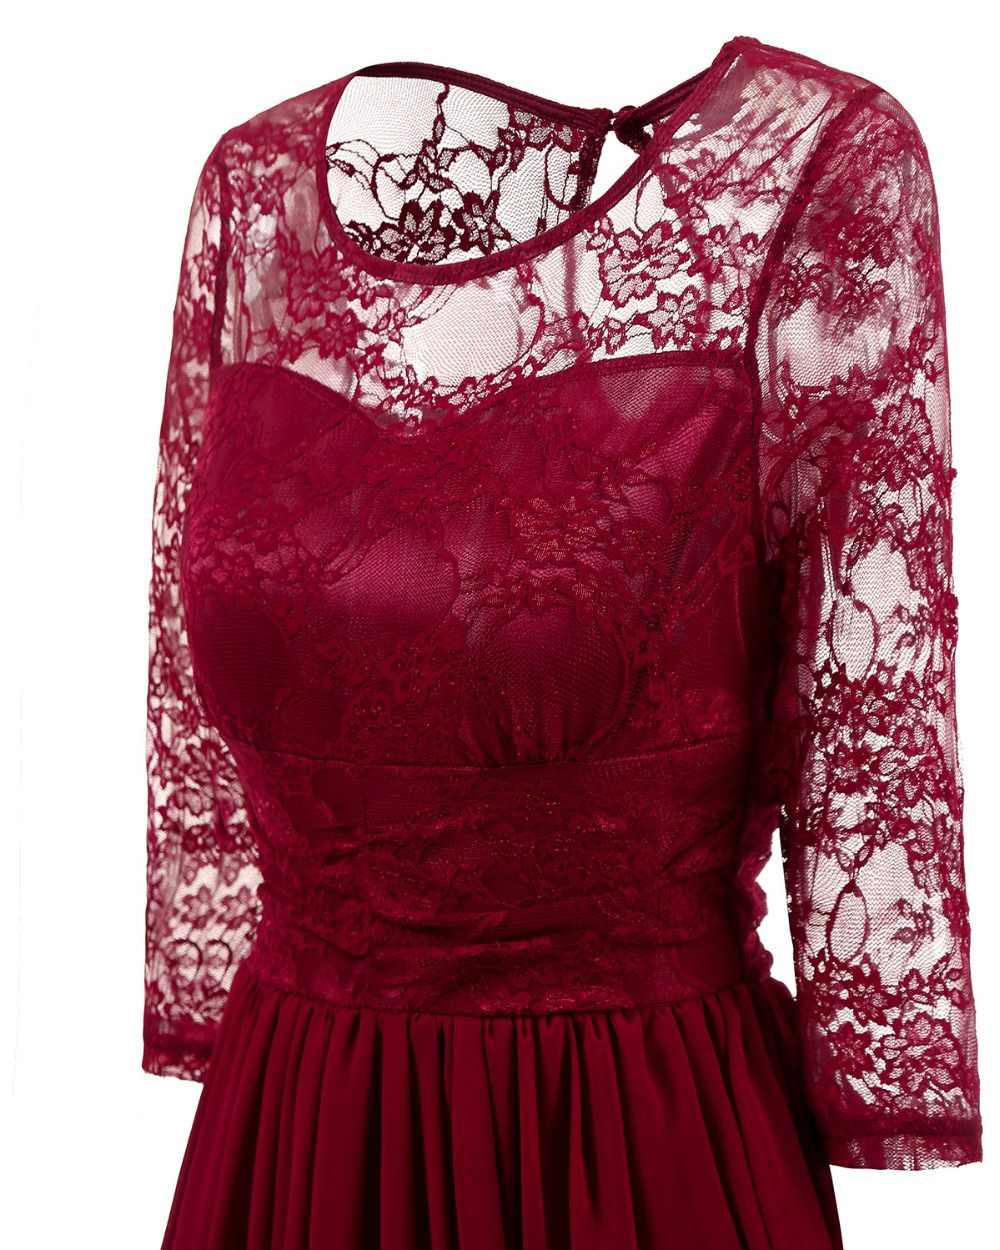 ... CD1581 Burgundy Lace Chiffon Short Bridesmaid Dresses Wedding Party  Dress Gown Prom Sister Bride Toast ... d25bccecff5b